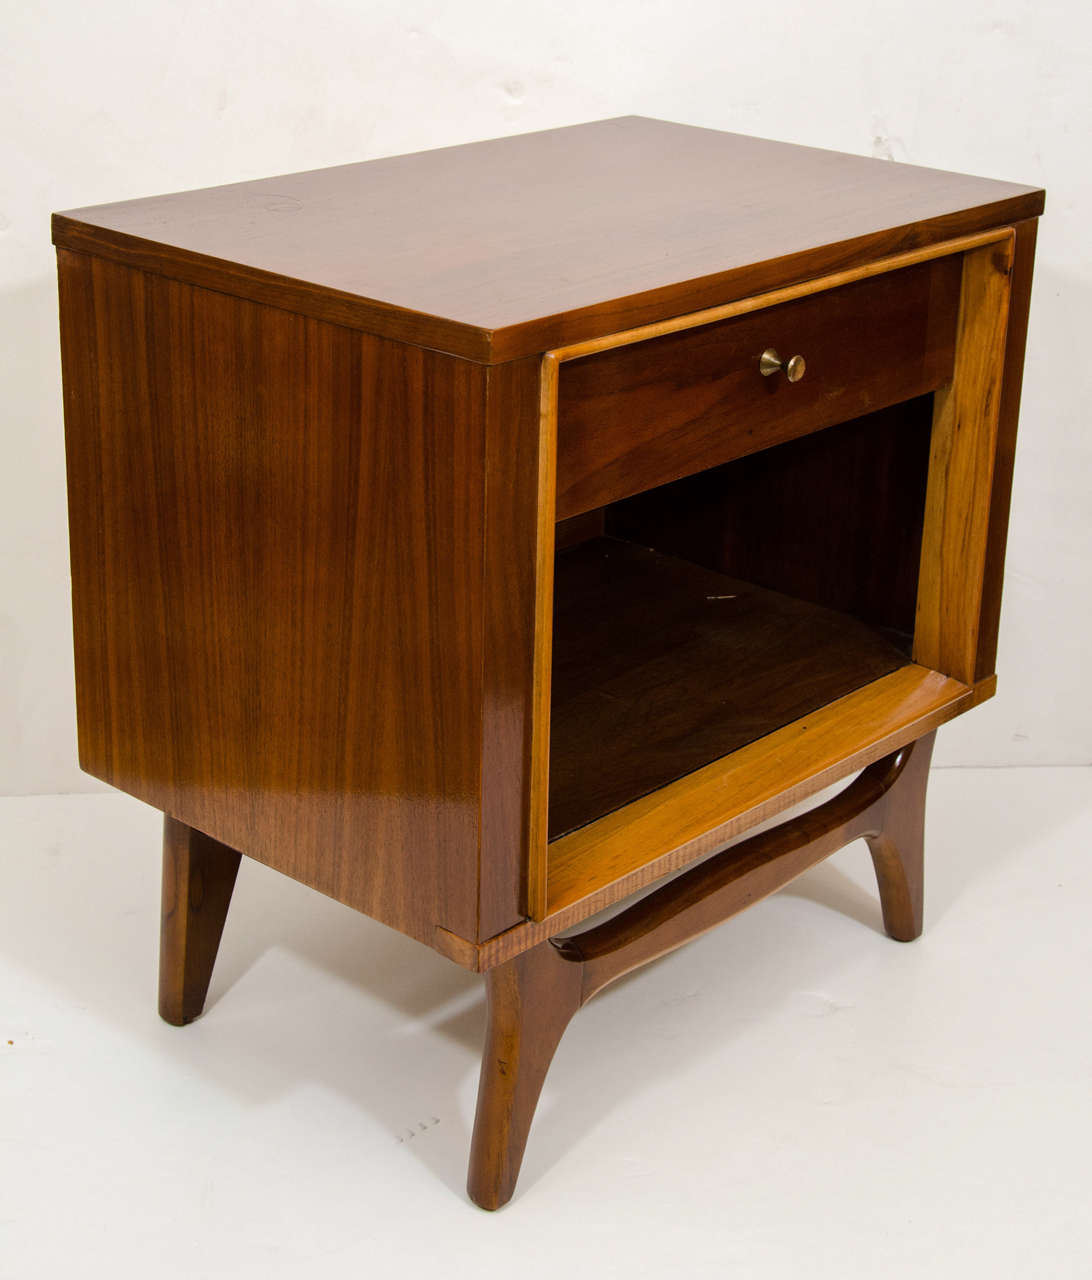 A pretty cube, crafted of walnut and birch and resting on a curved walnut frame. The cabinet has a single drawer, and large open compartment for books or periodicals. Perfect companion to any couch or bed; made to rest a beverage or book.